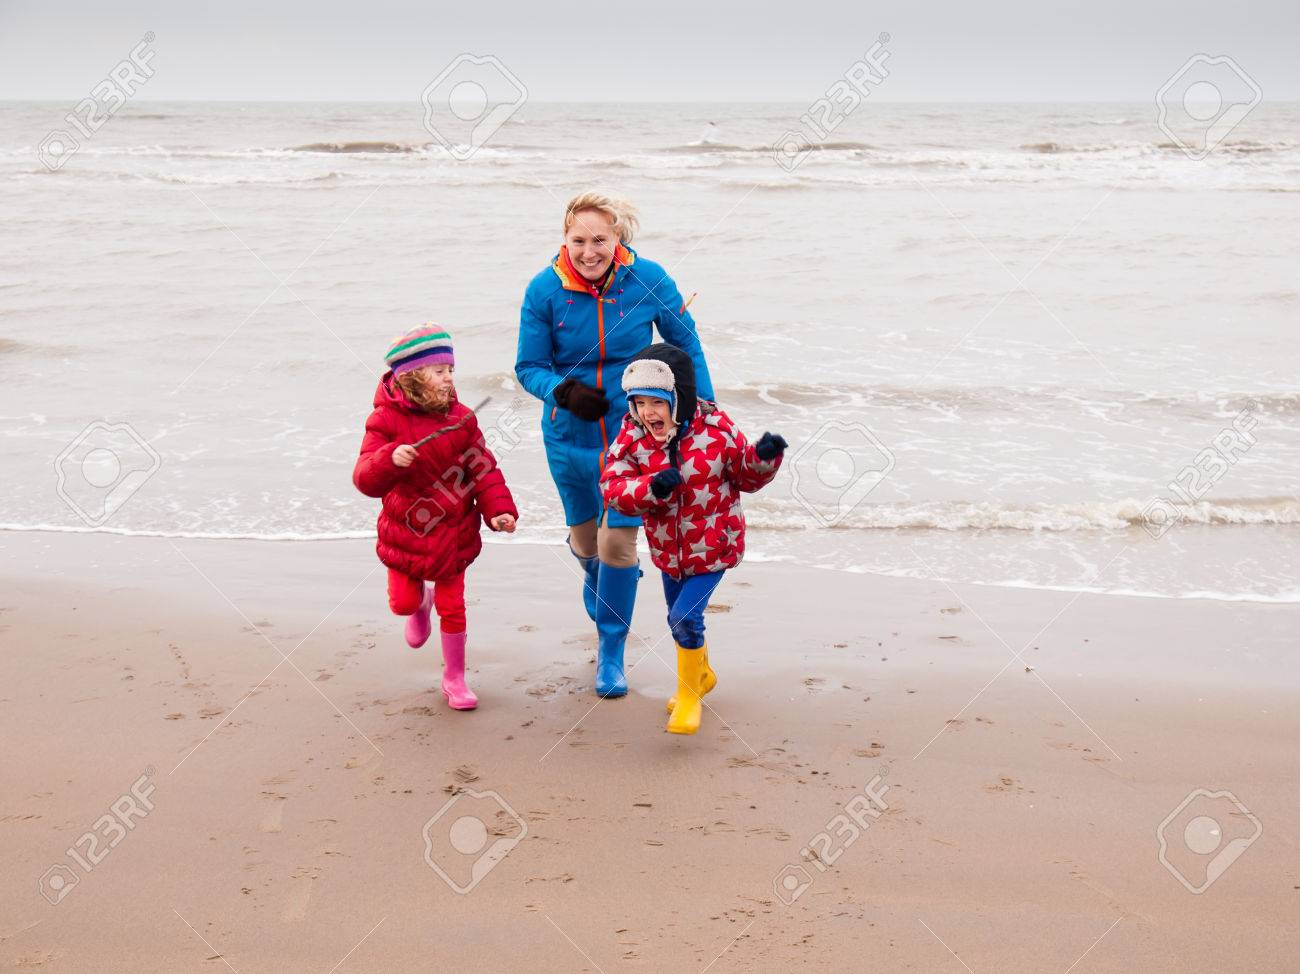 d46832b607 Stock Photo - woman with small boy and girl in winter clothing and rubber  boots playing on a winter beach running away from waves